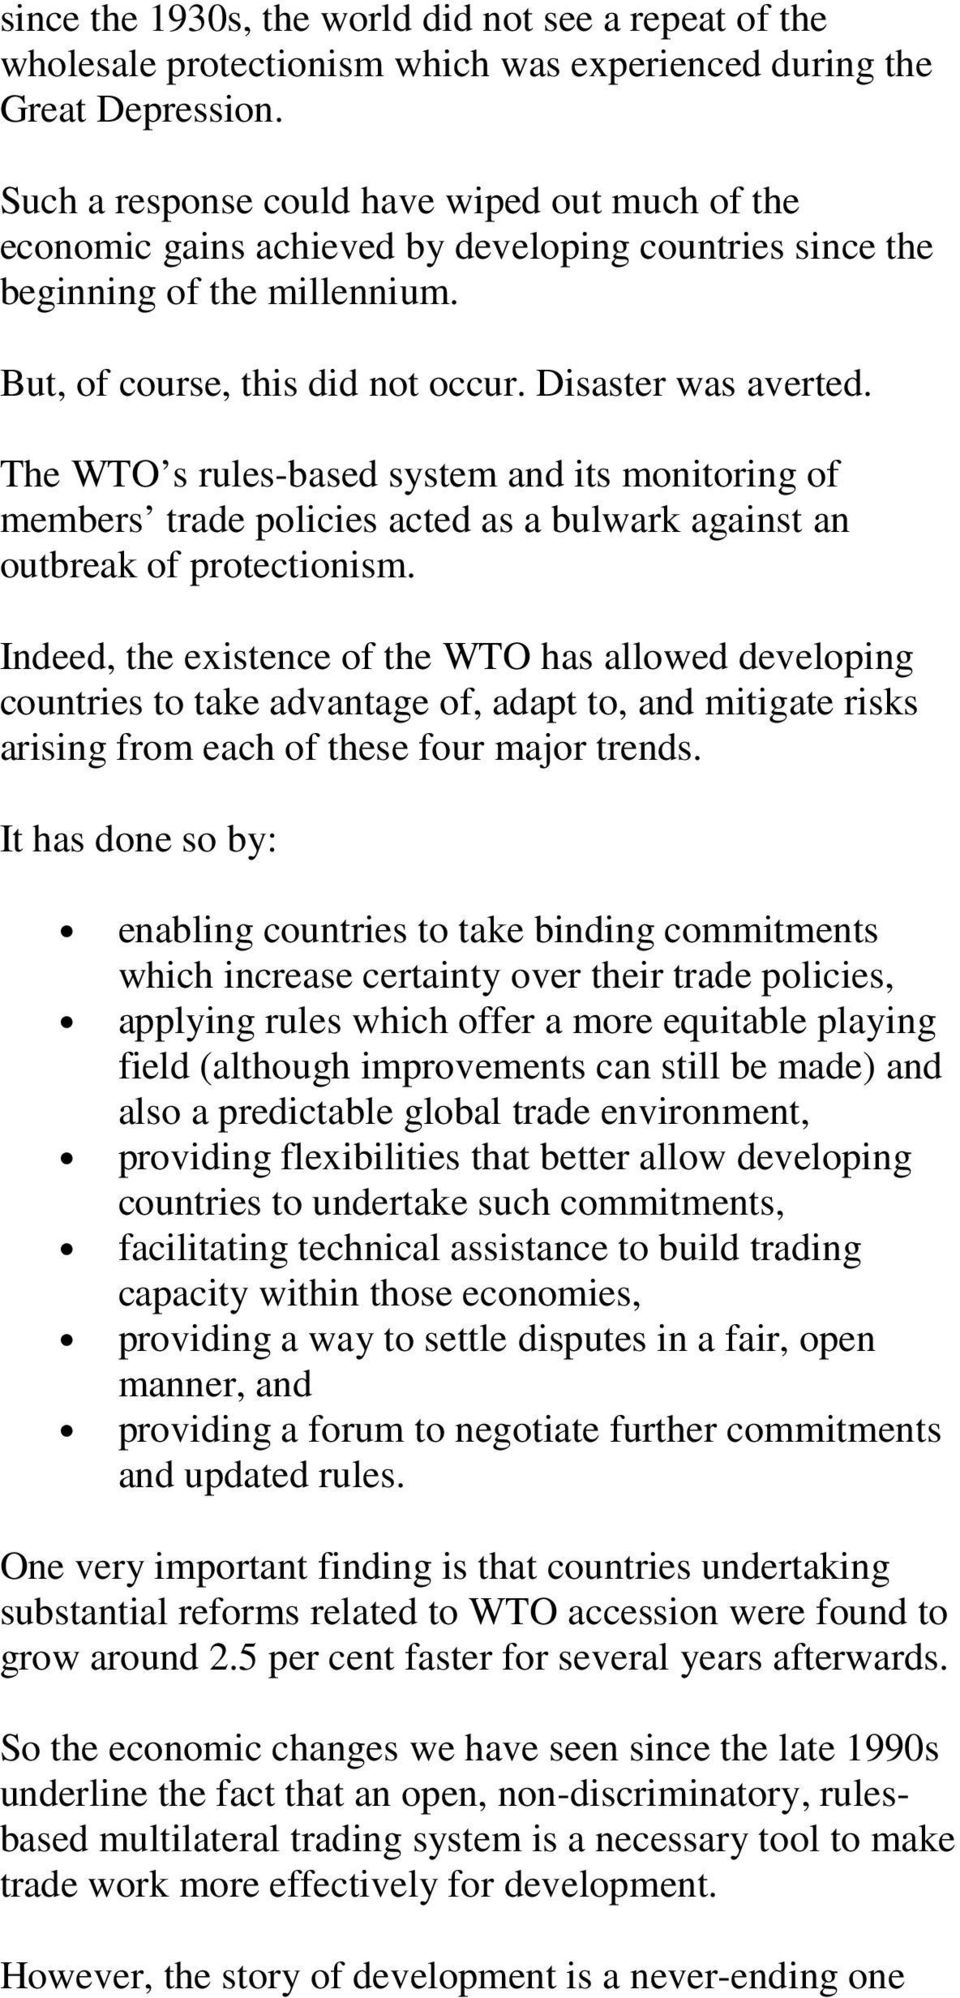 The WTO s rules-based system and its monitoring of members trade policies acted as a bulwark against an outbreak of protectionism.